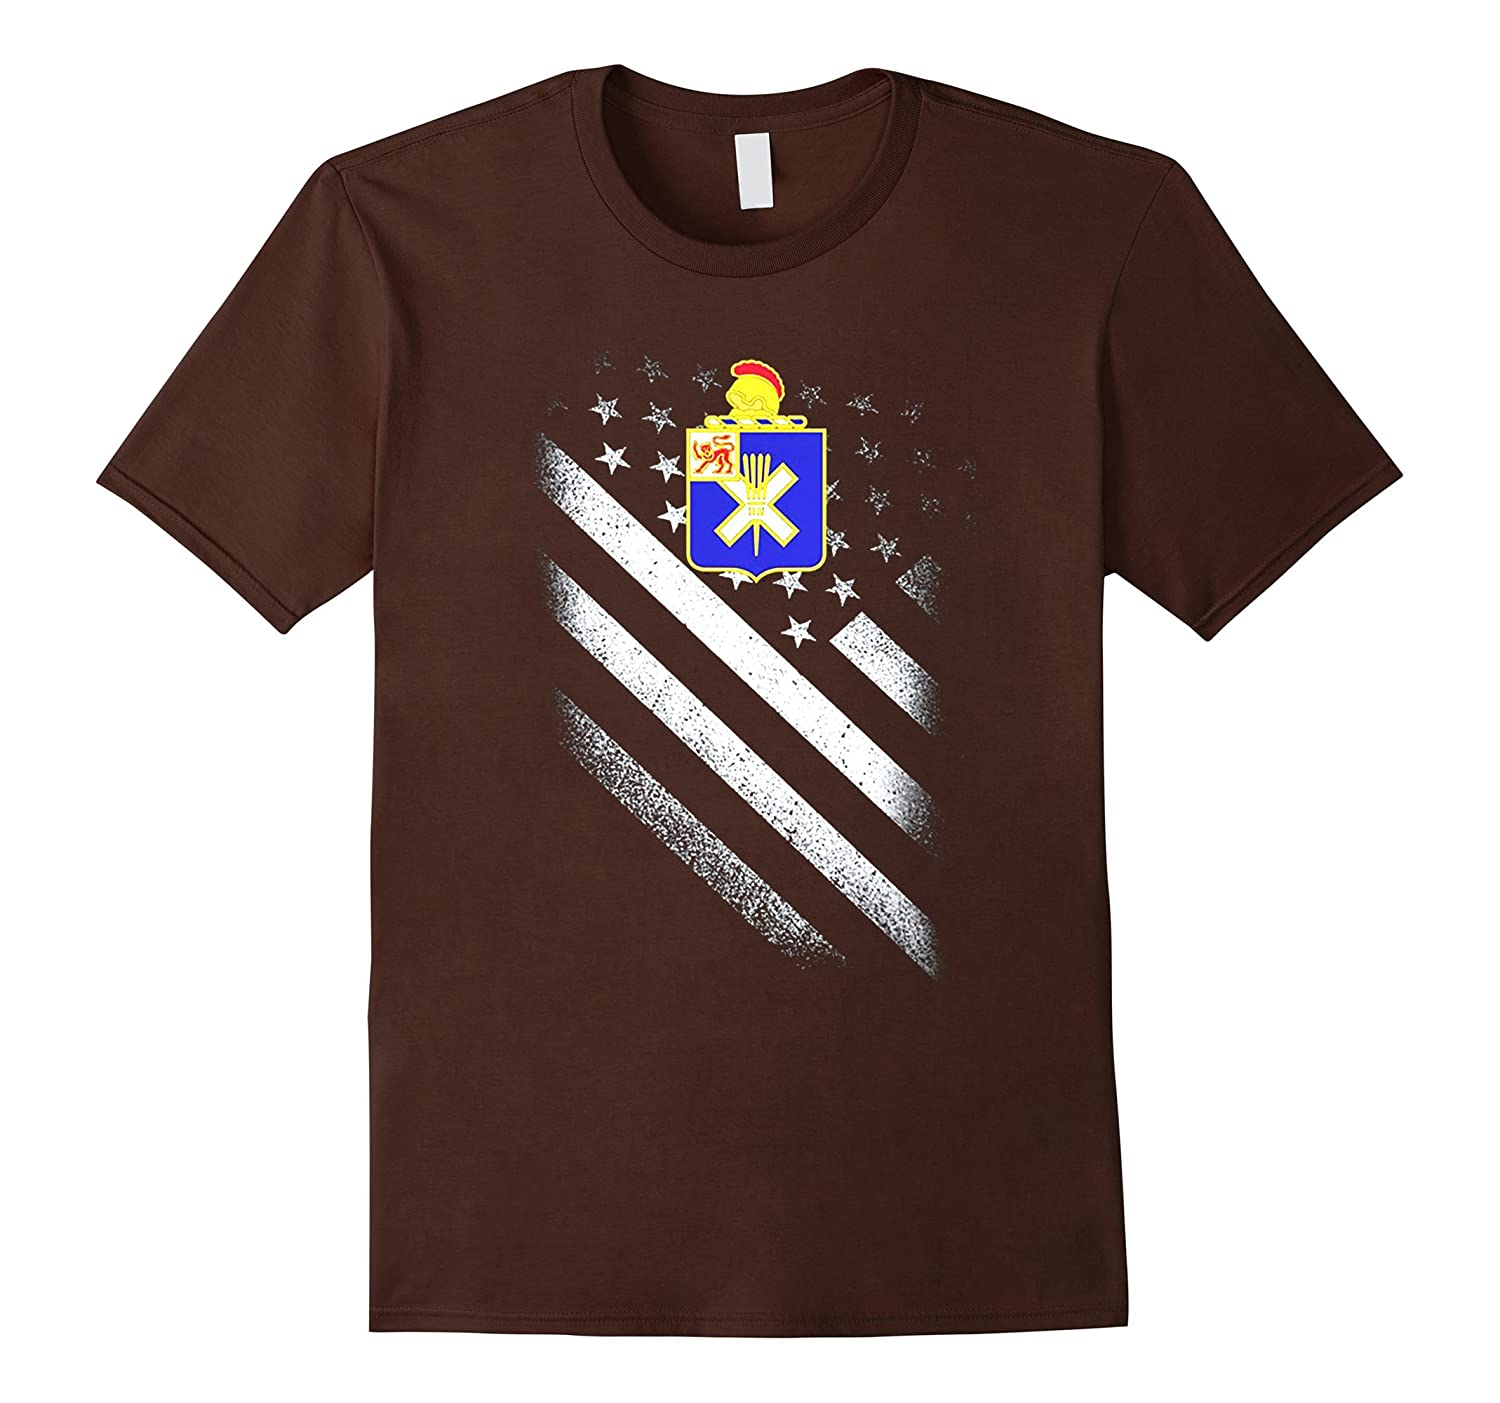 32ND INFANTRY REGIMENT AMERICAN FLAG TSHIRT